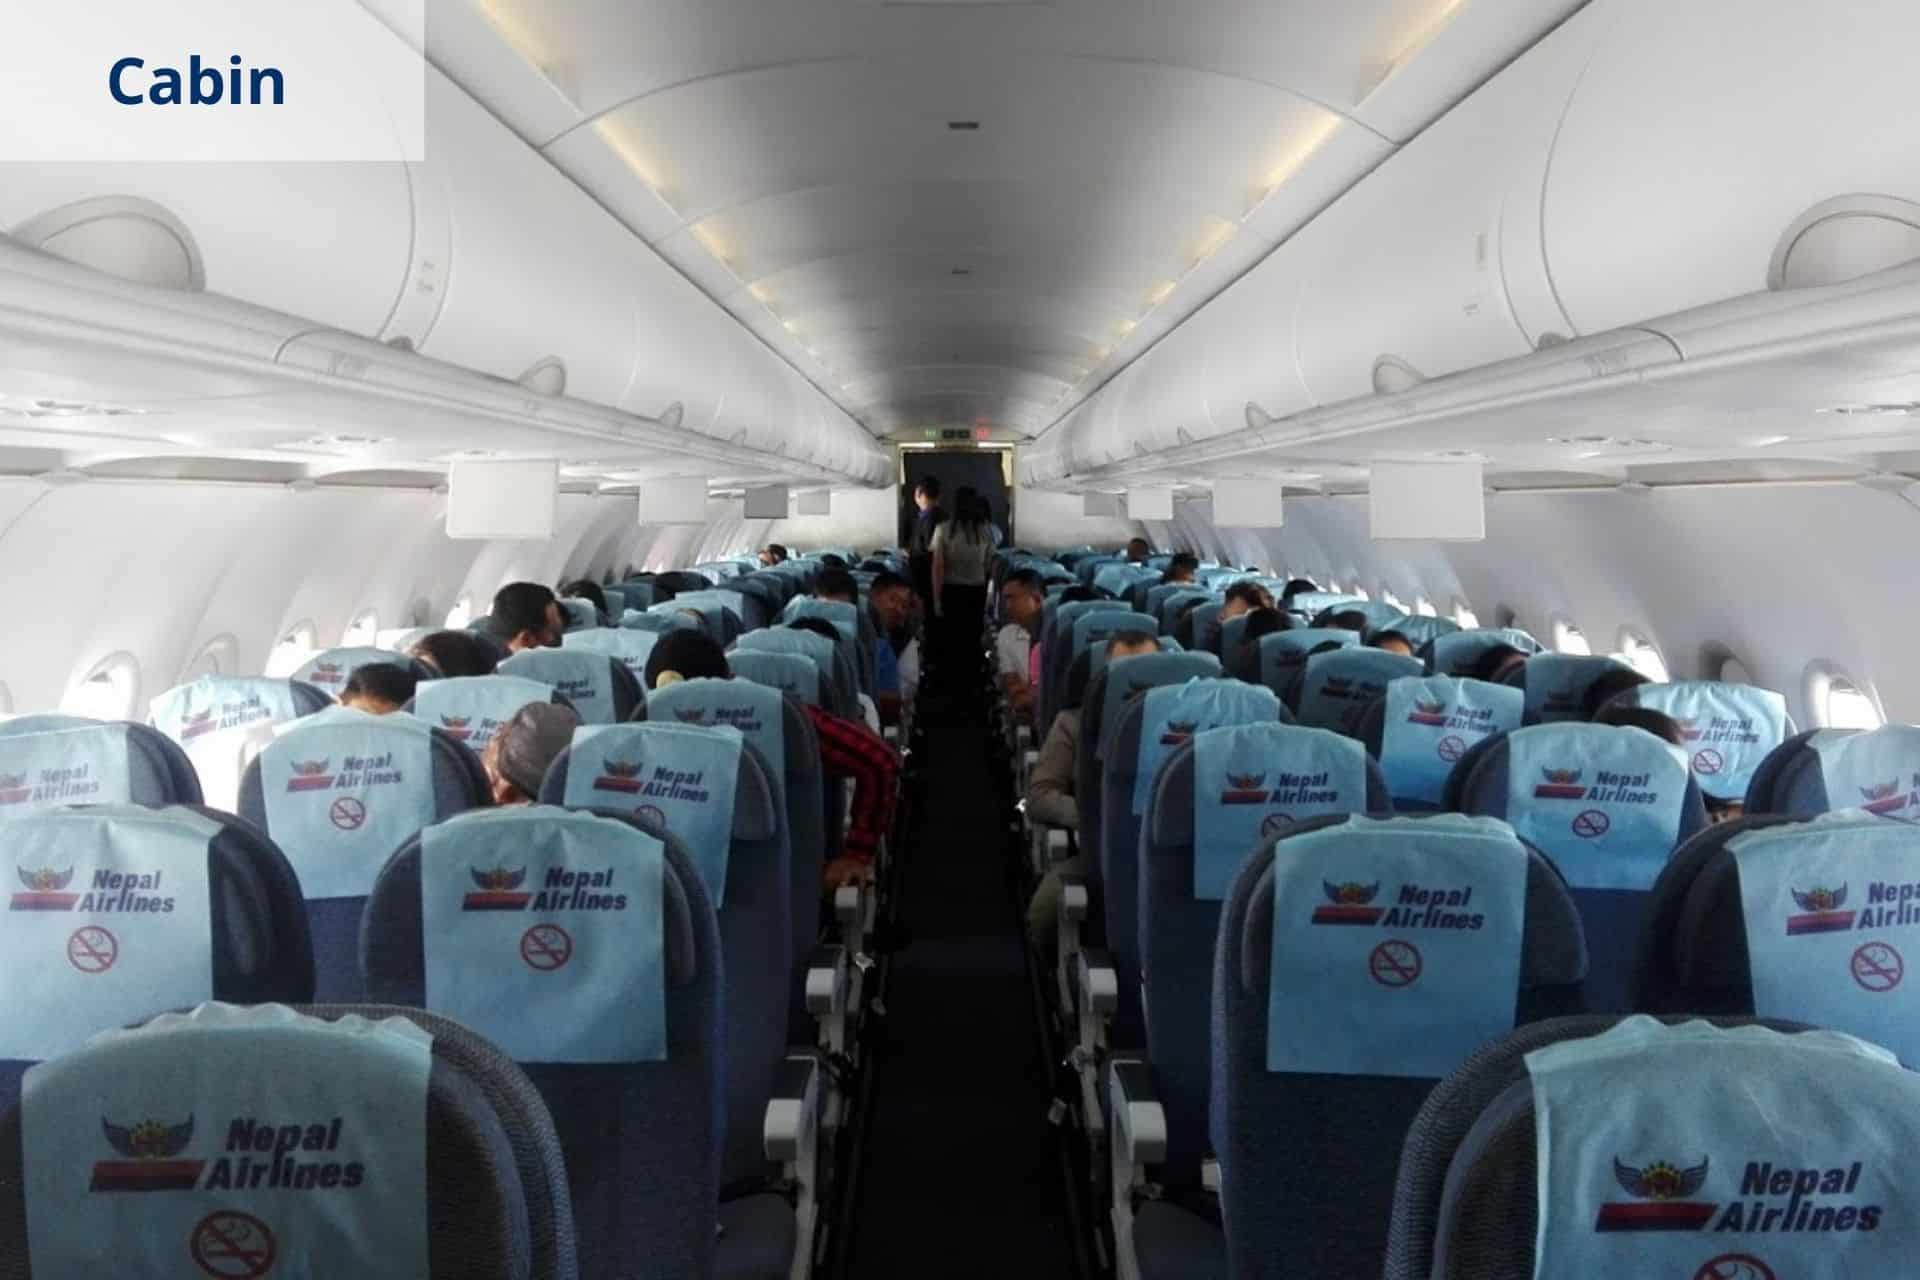 Nepal Airlines Cabin